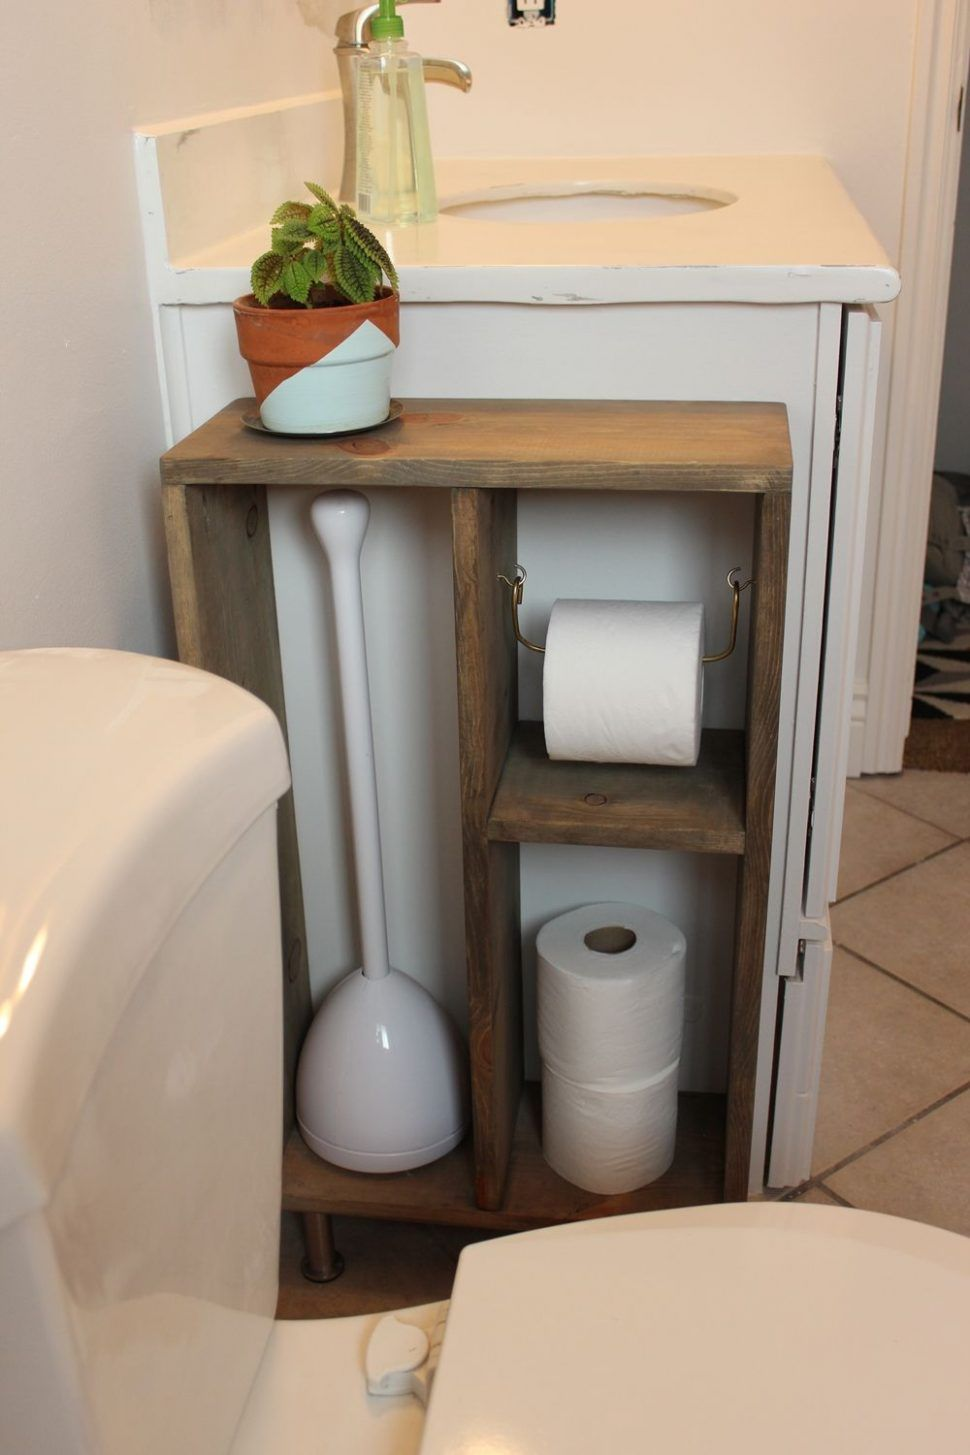 A toilet paper holder may not be the most glamorous bathroom fixture and is usually ignored